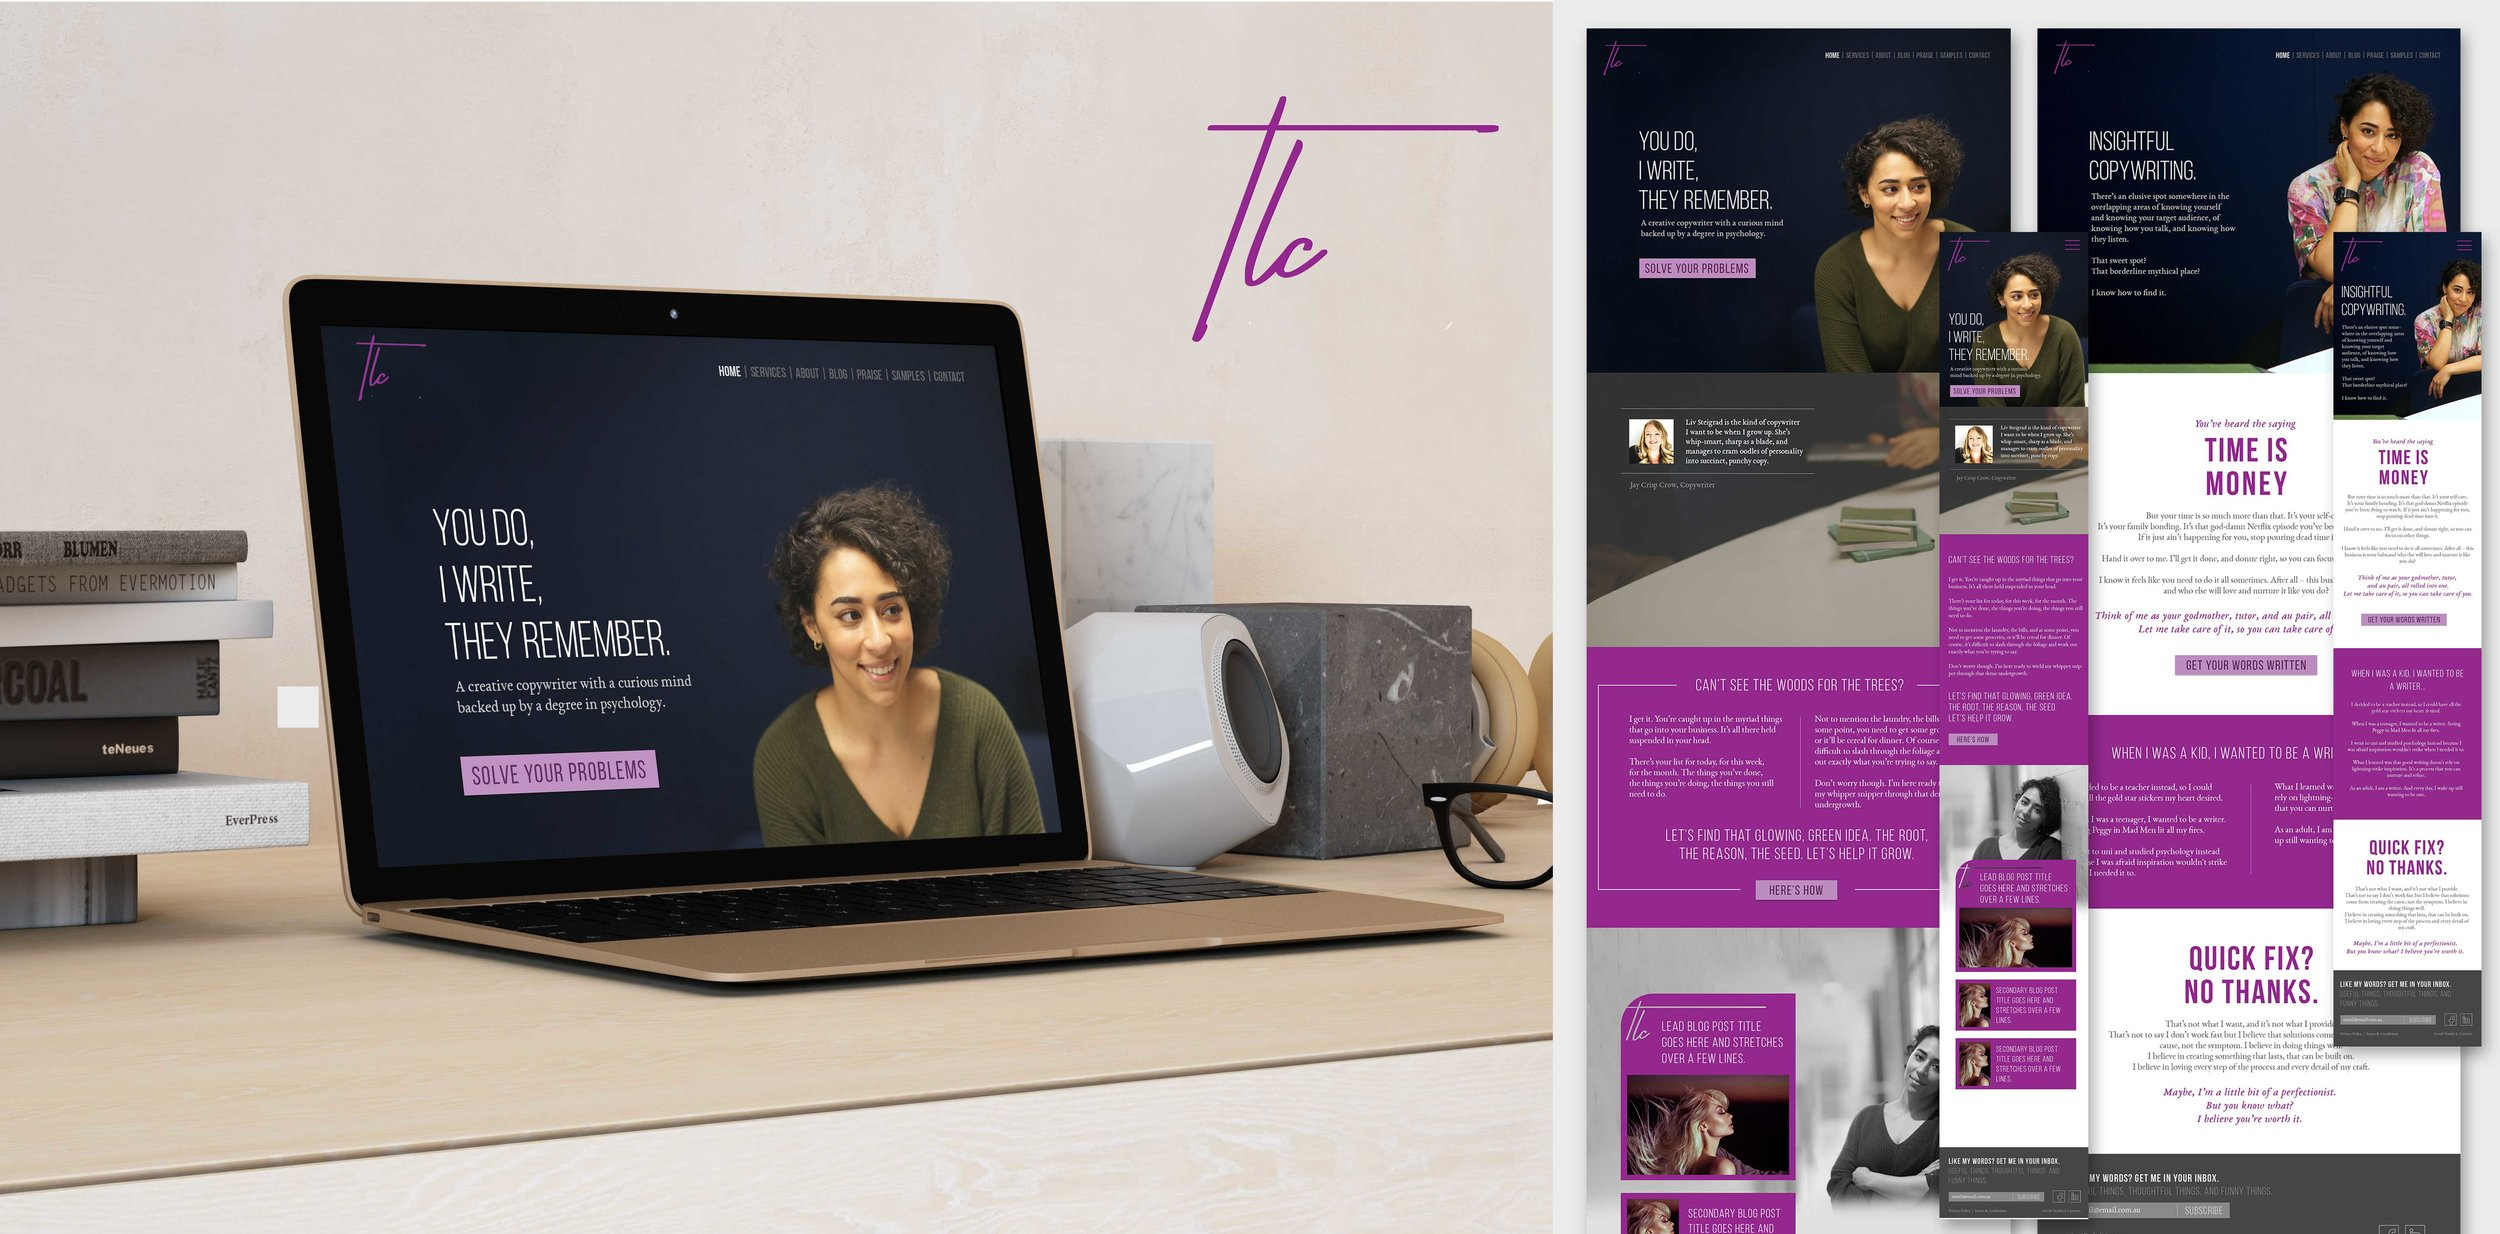 tlc-website-design.jpg